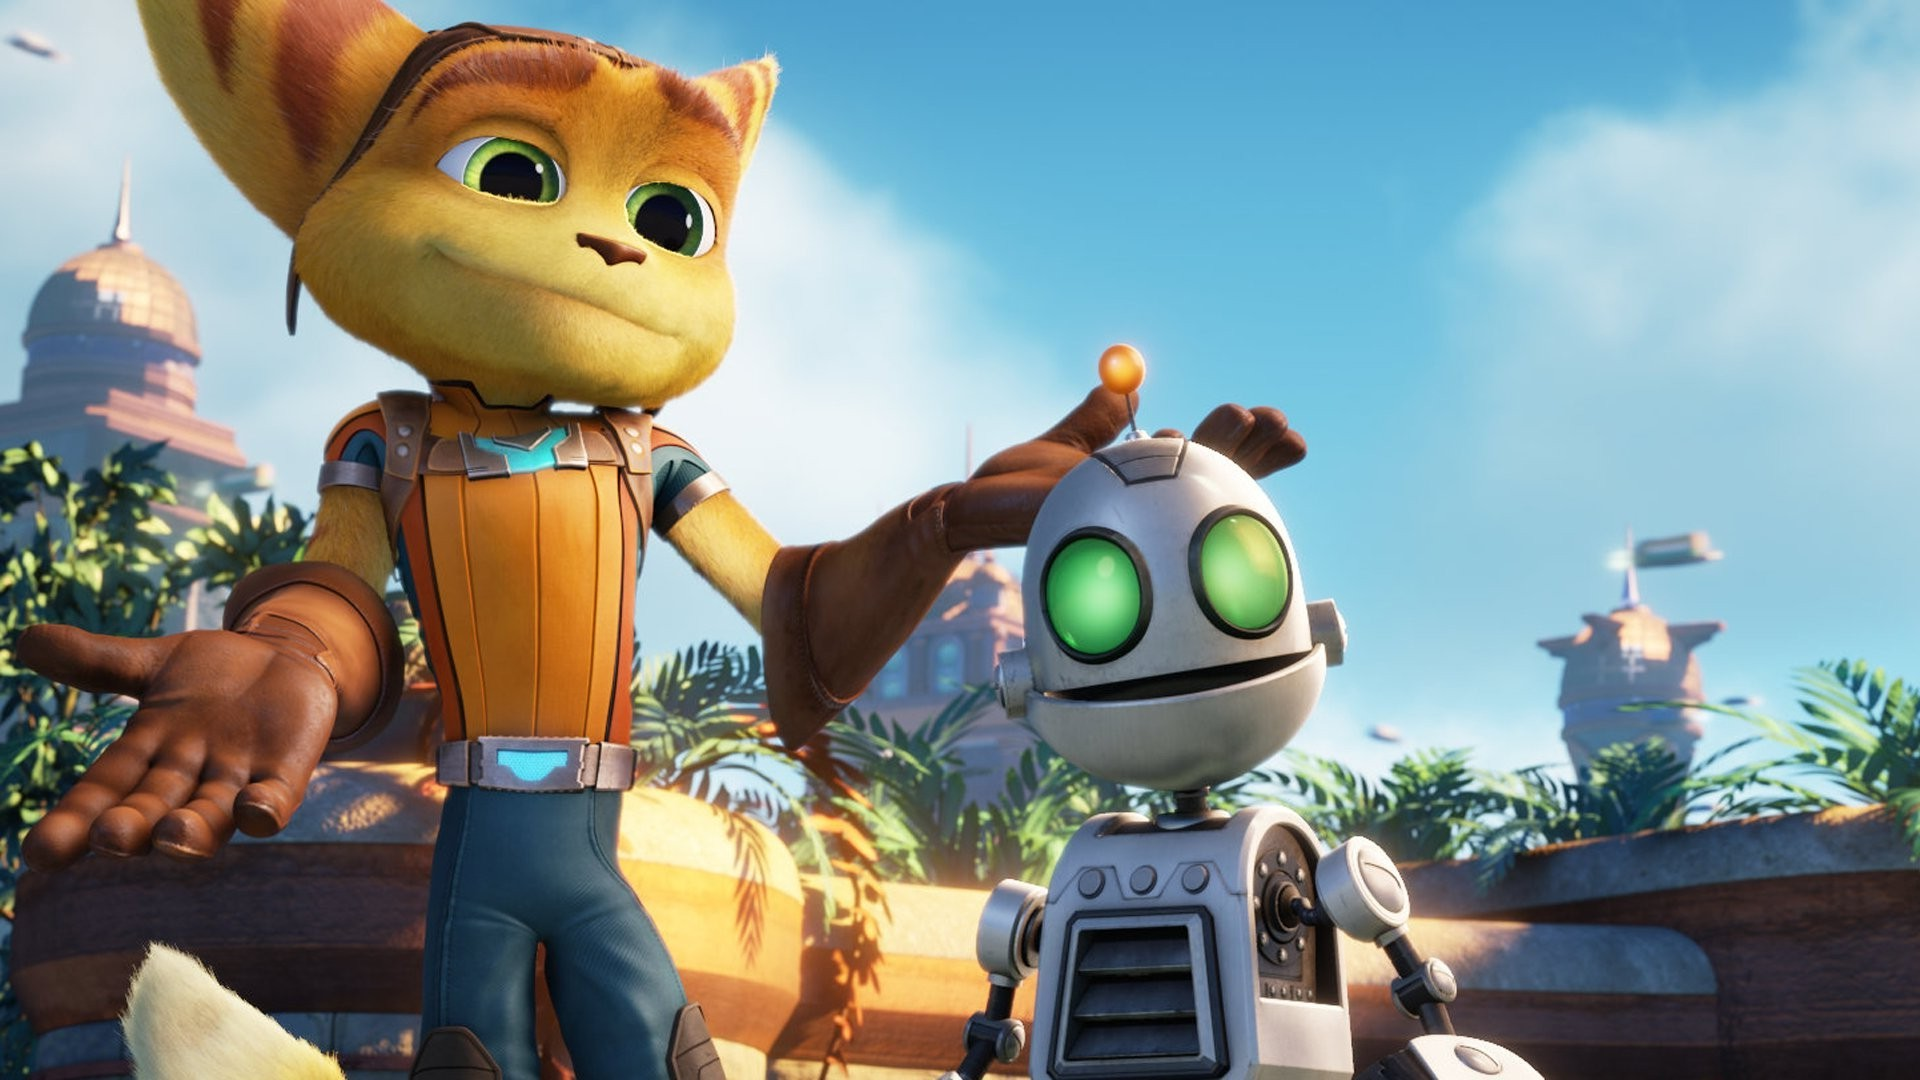 Nature Wallpaper Hd 3d Full Size Ratchet And Clank Ratchet And Clank Movie Wallpapers Hd